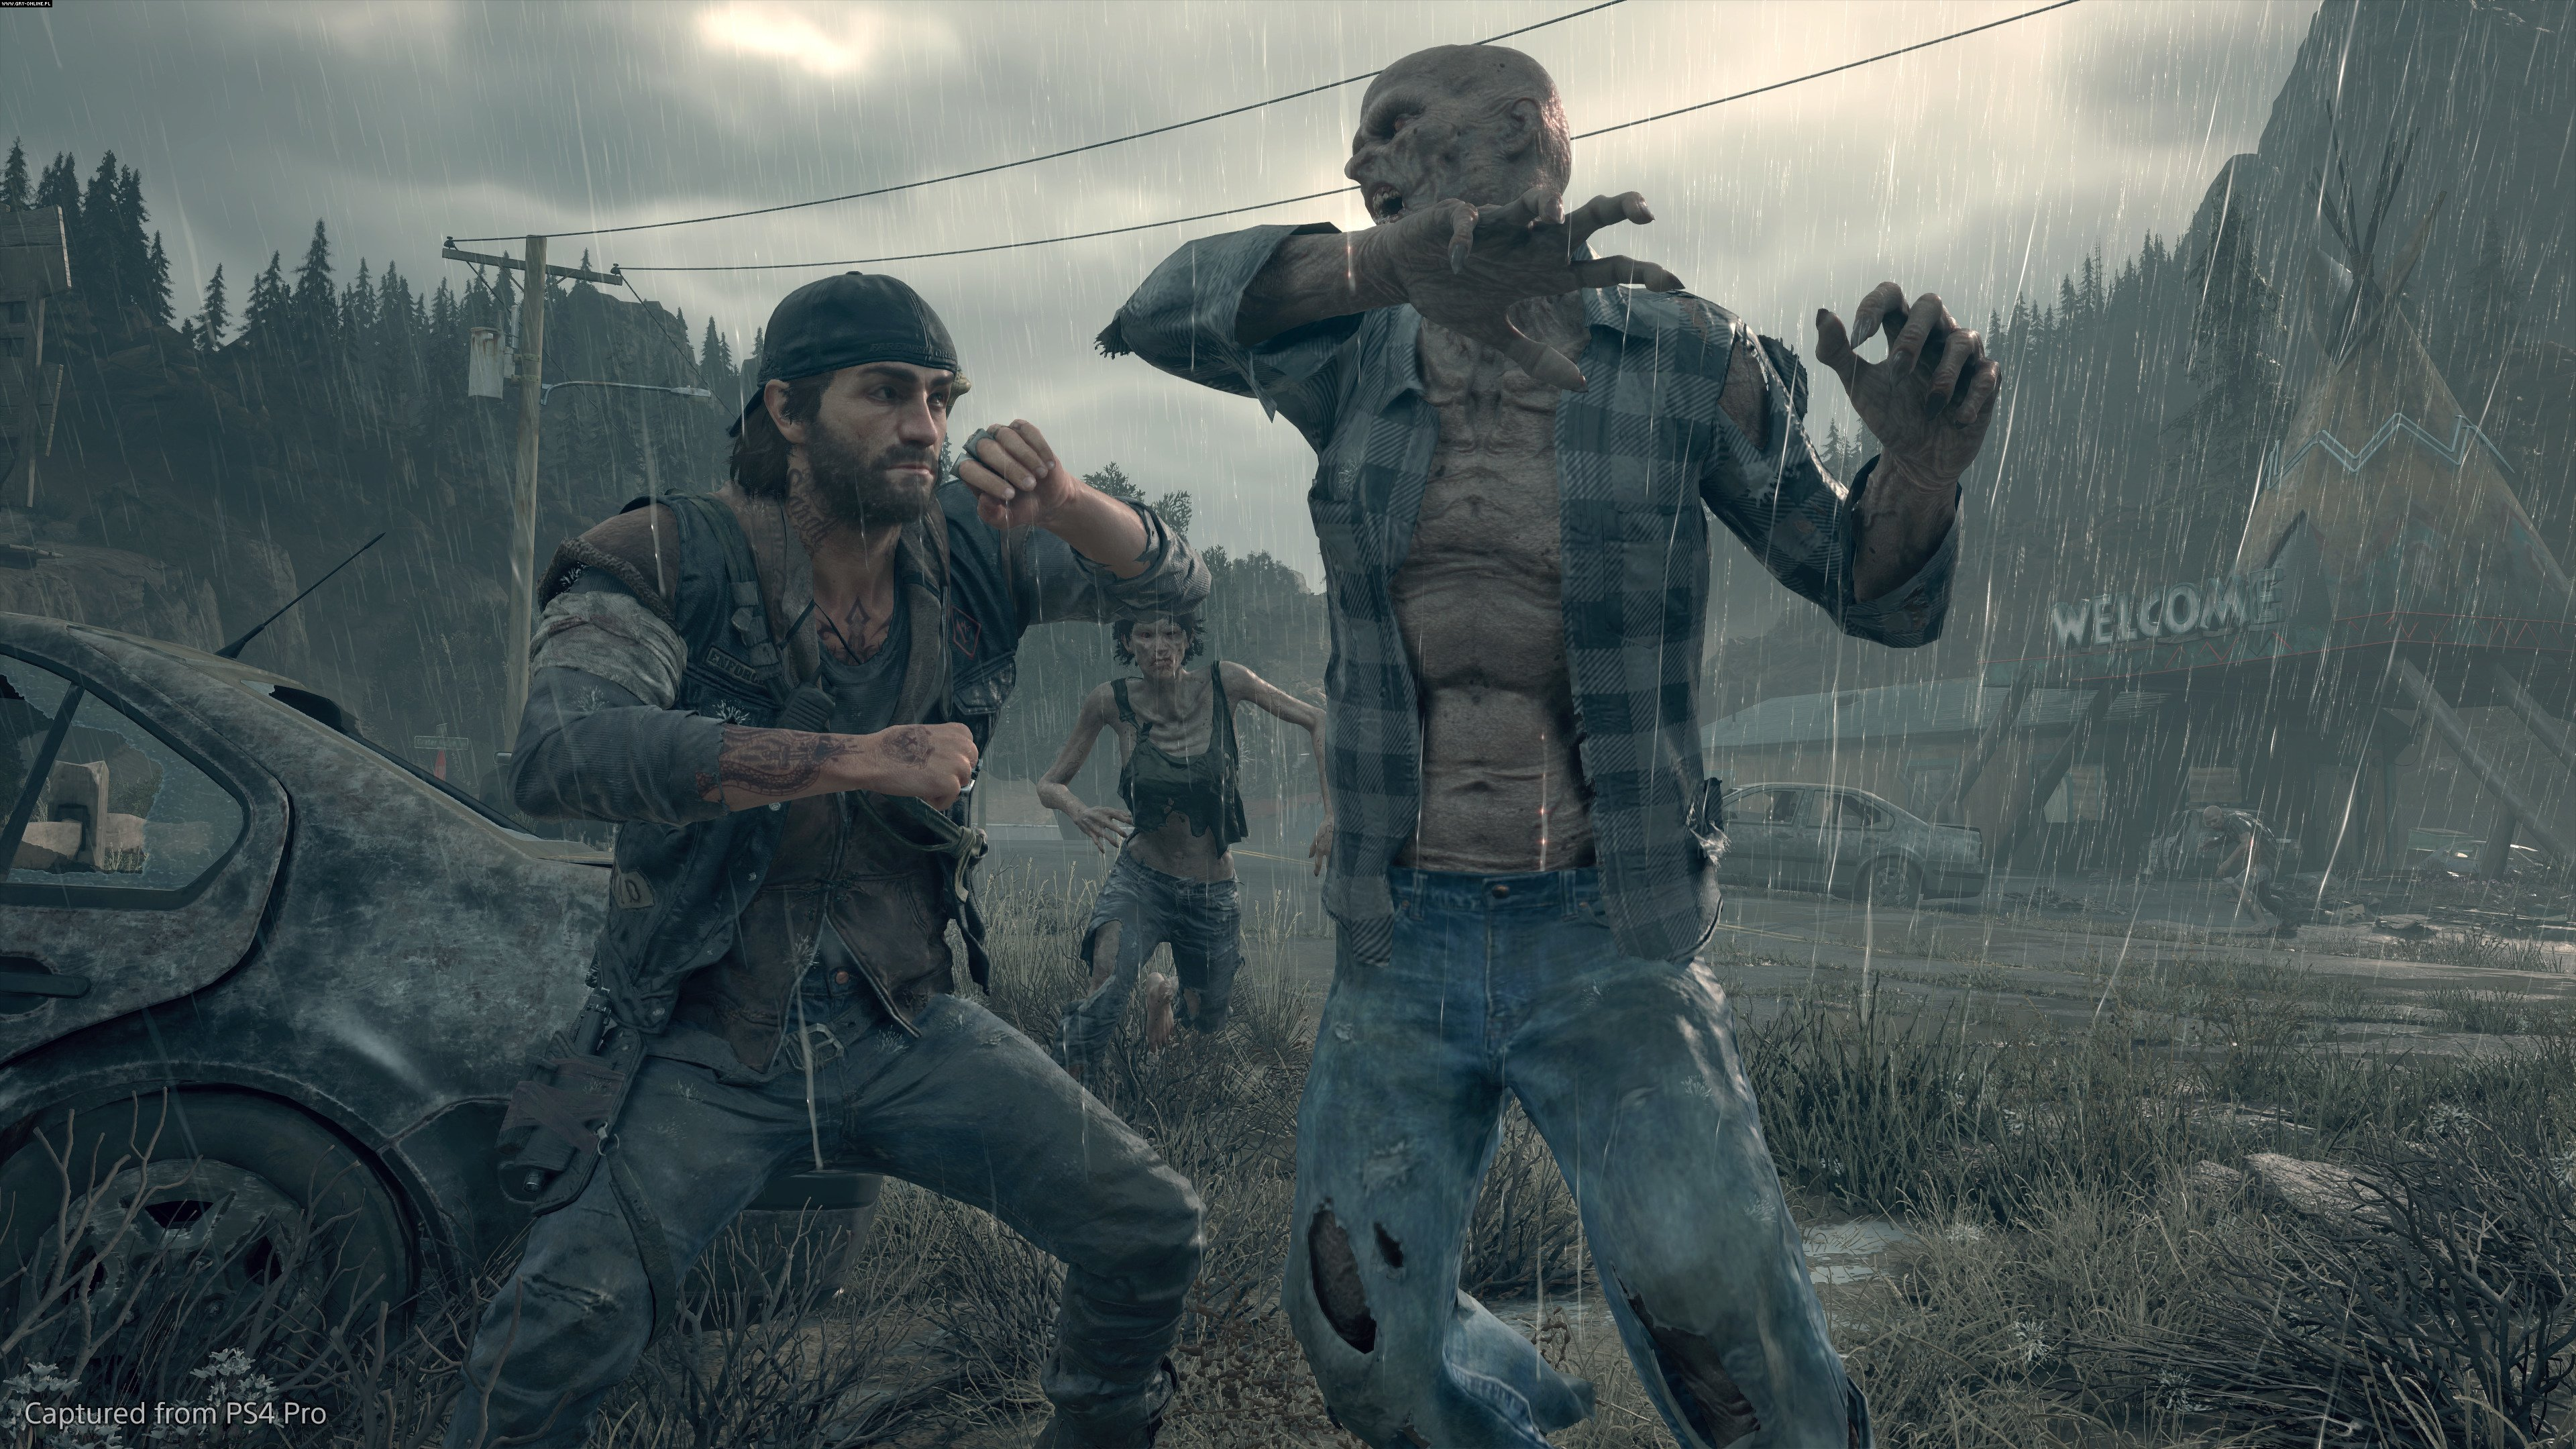 Days Gone PS4 Games Image 29/64, Bend Studio, Sony Interactive Entertainment